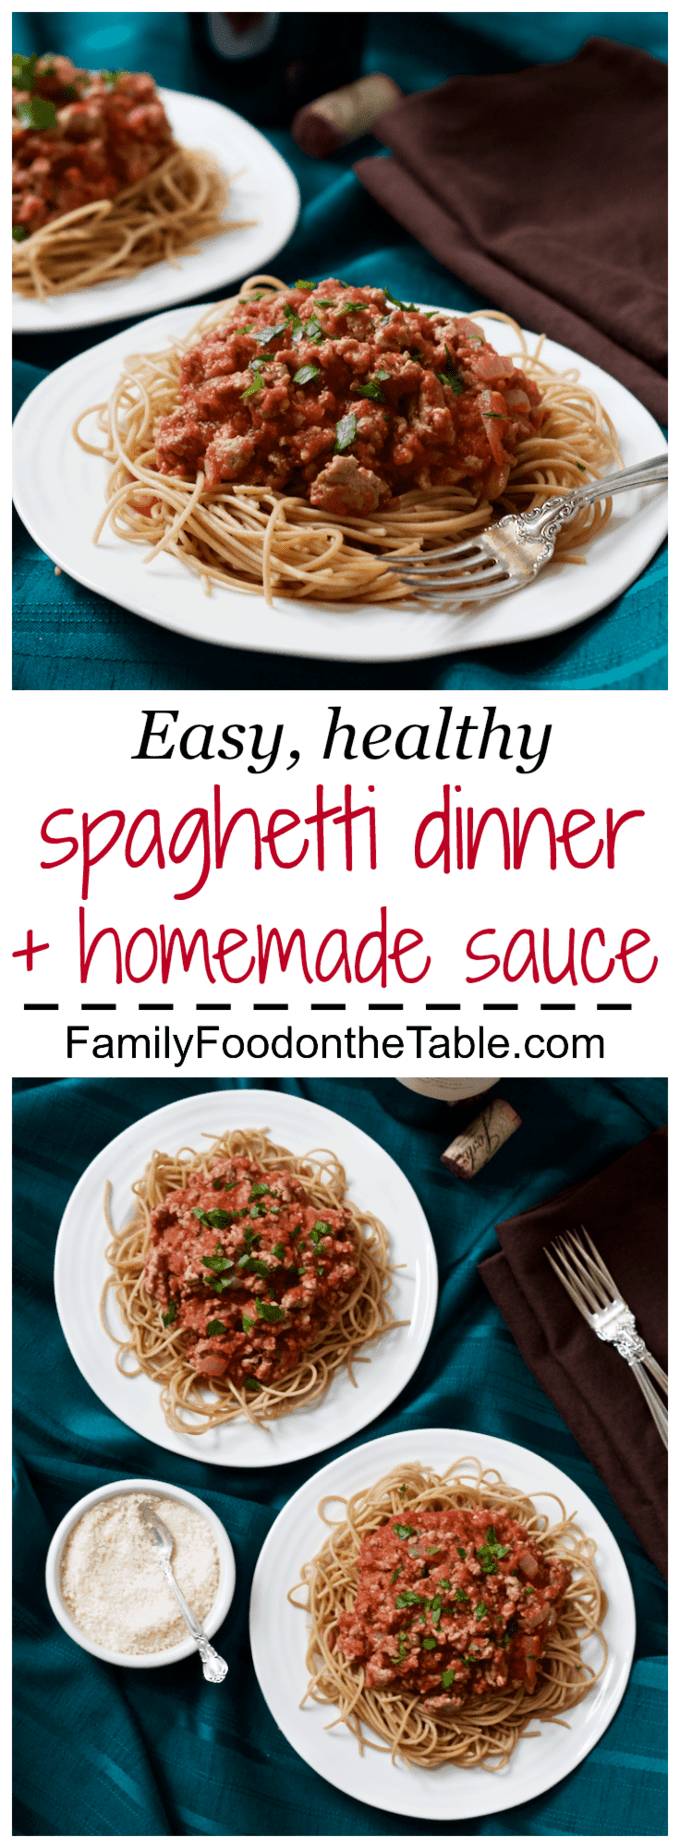 Spaghetti dinner with easy homemade sauce - a healthier version of the family favorite! | FamilyFoodontheTable.com